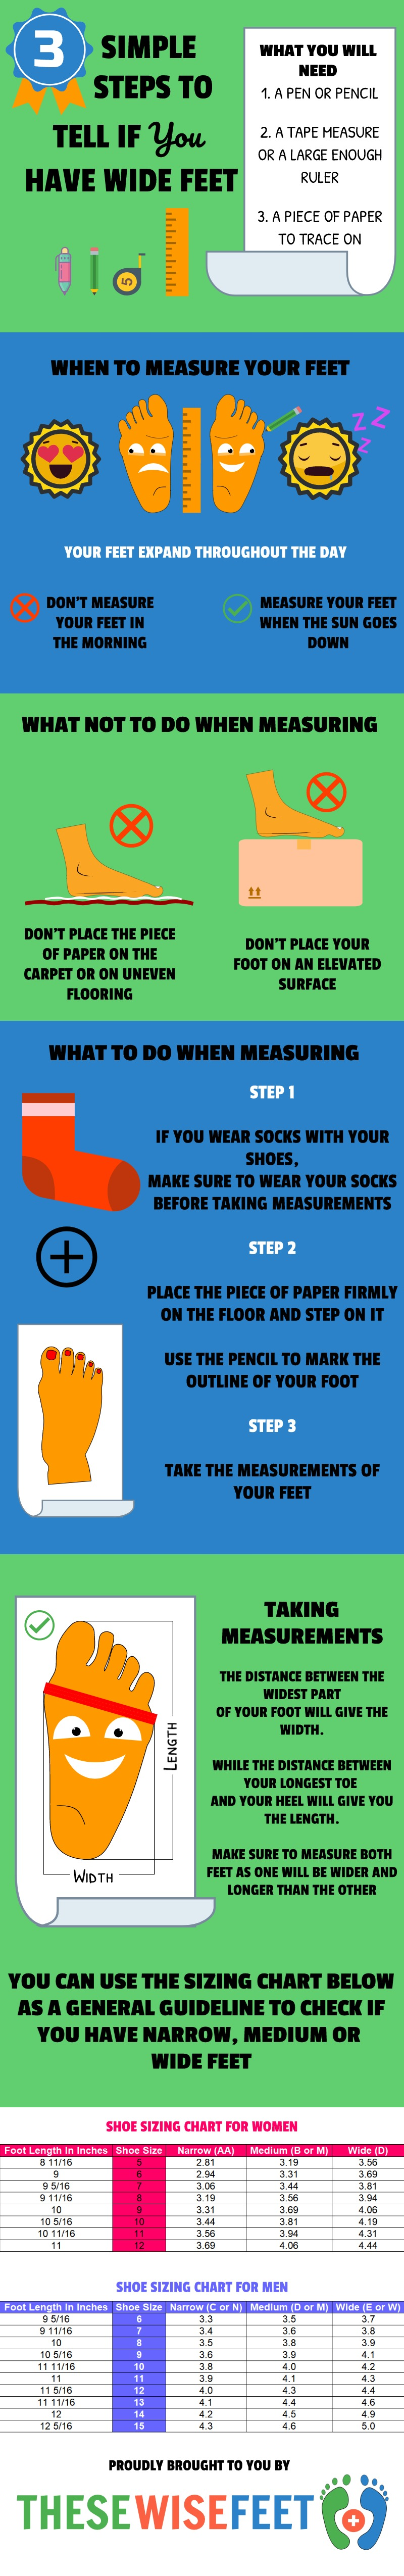 How to tell if you have wide feet infographic